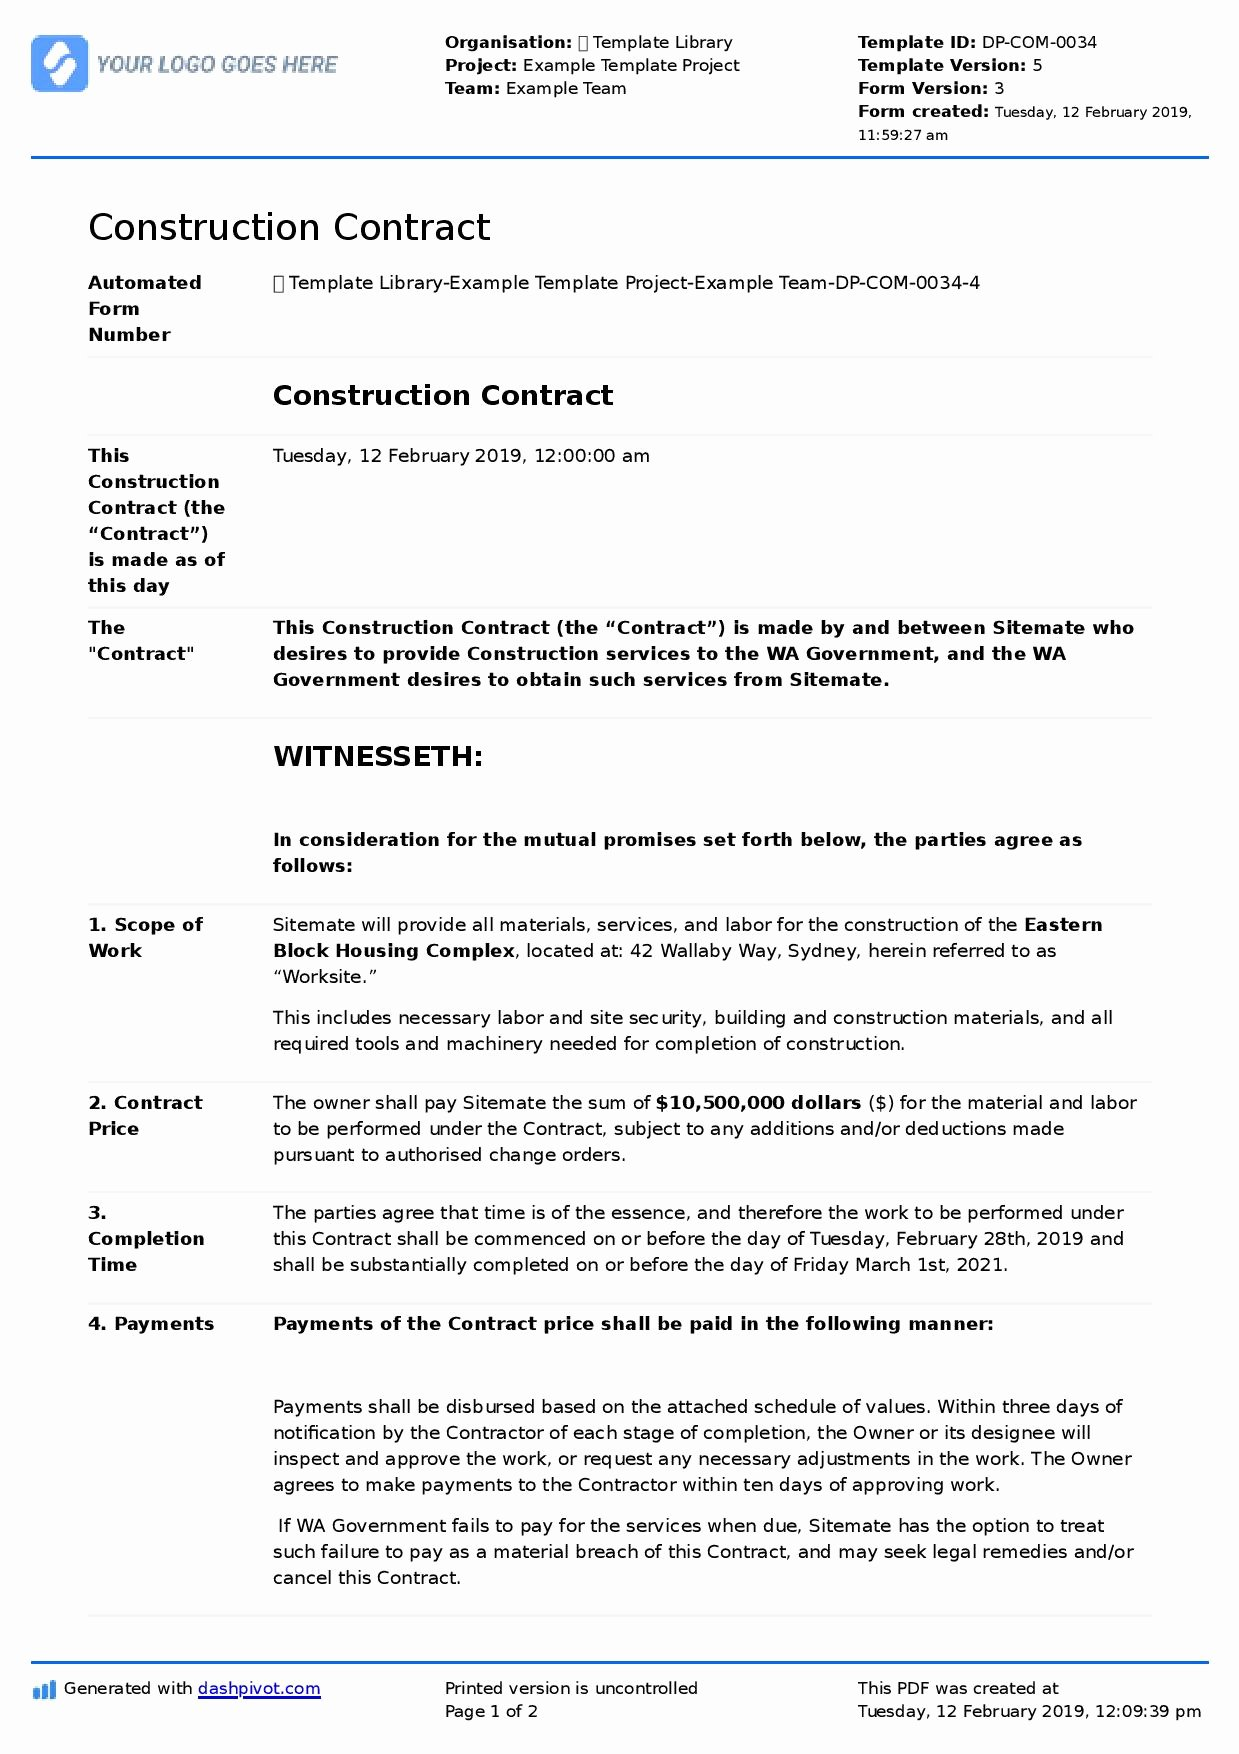 Construction Contract Template Free Luxury Construction Contract Sample Better Than Word and Pdf